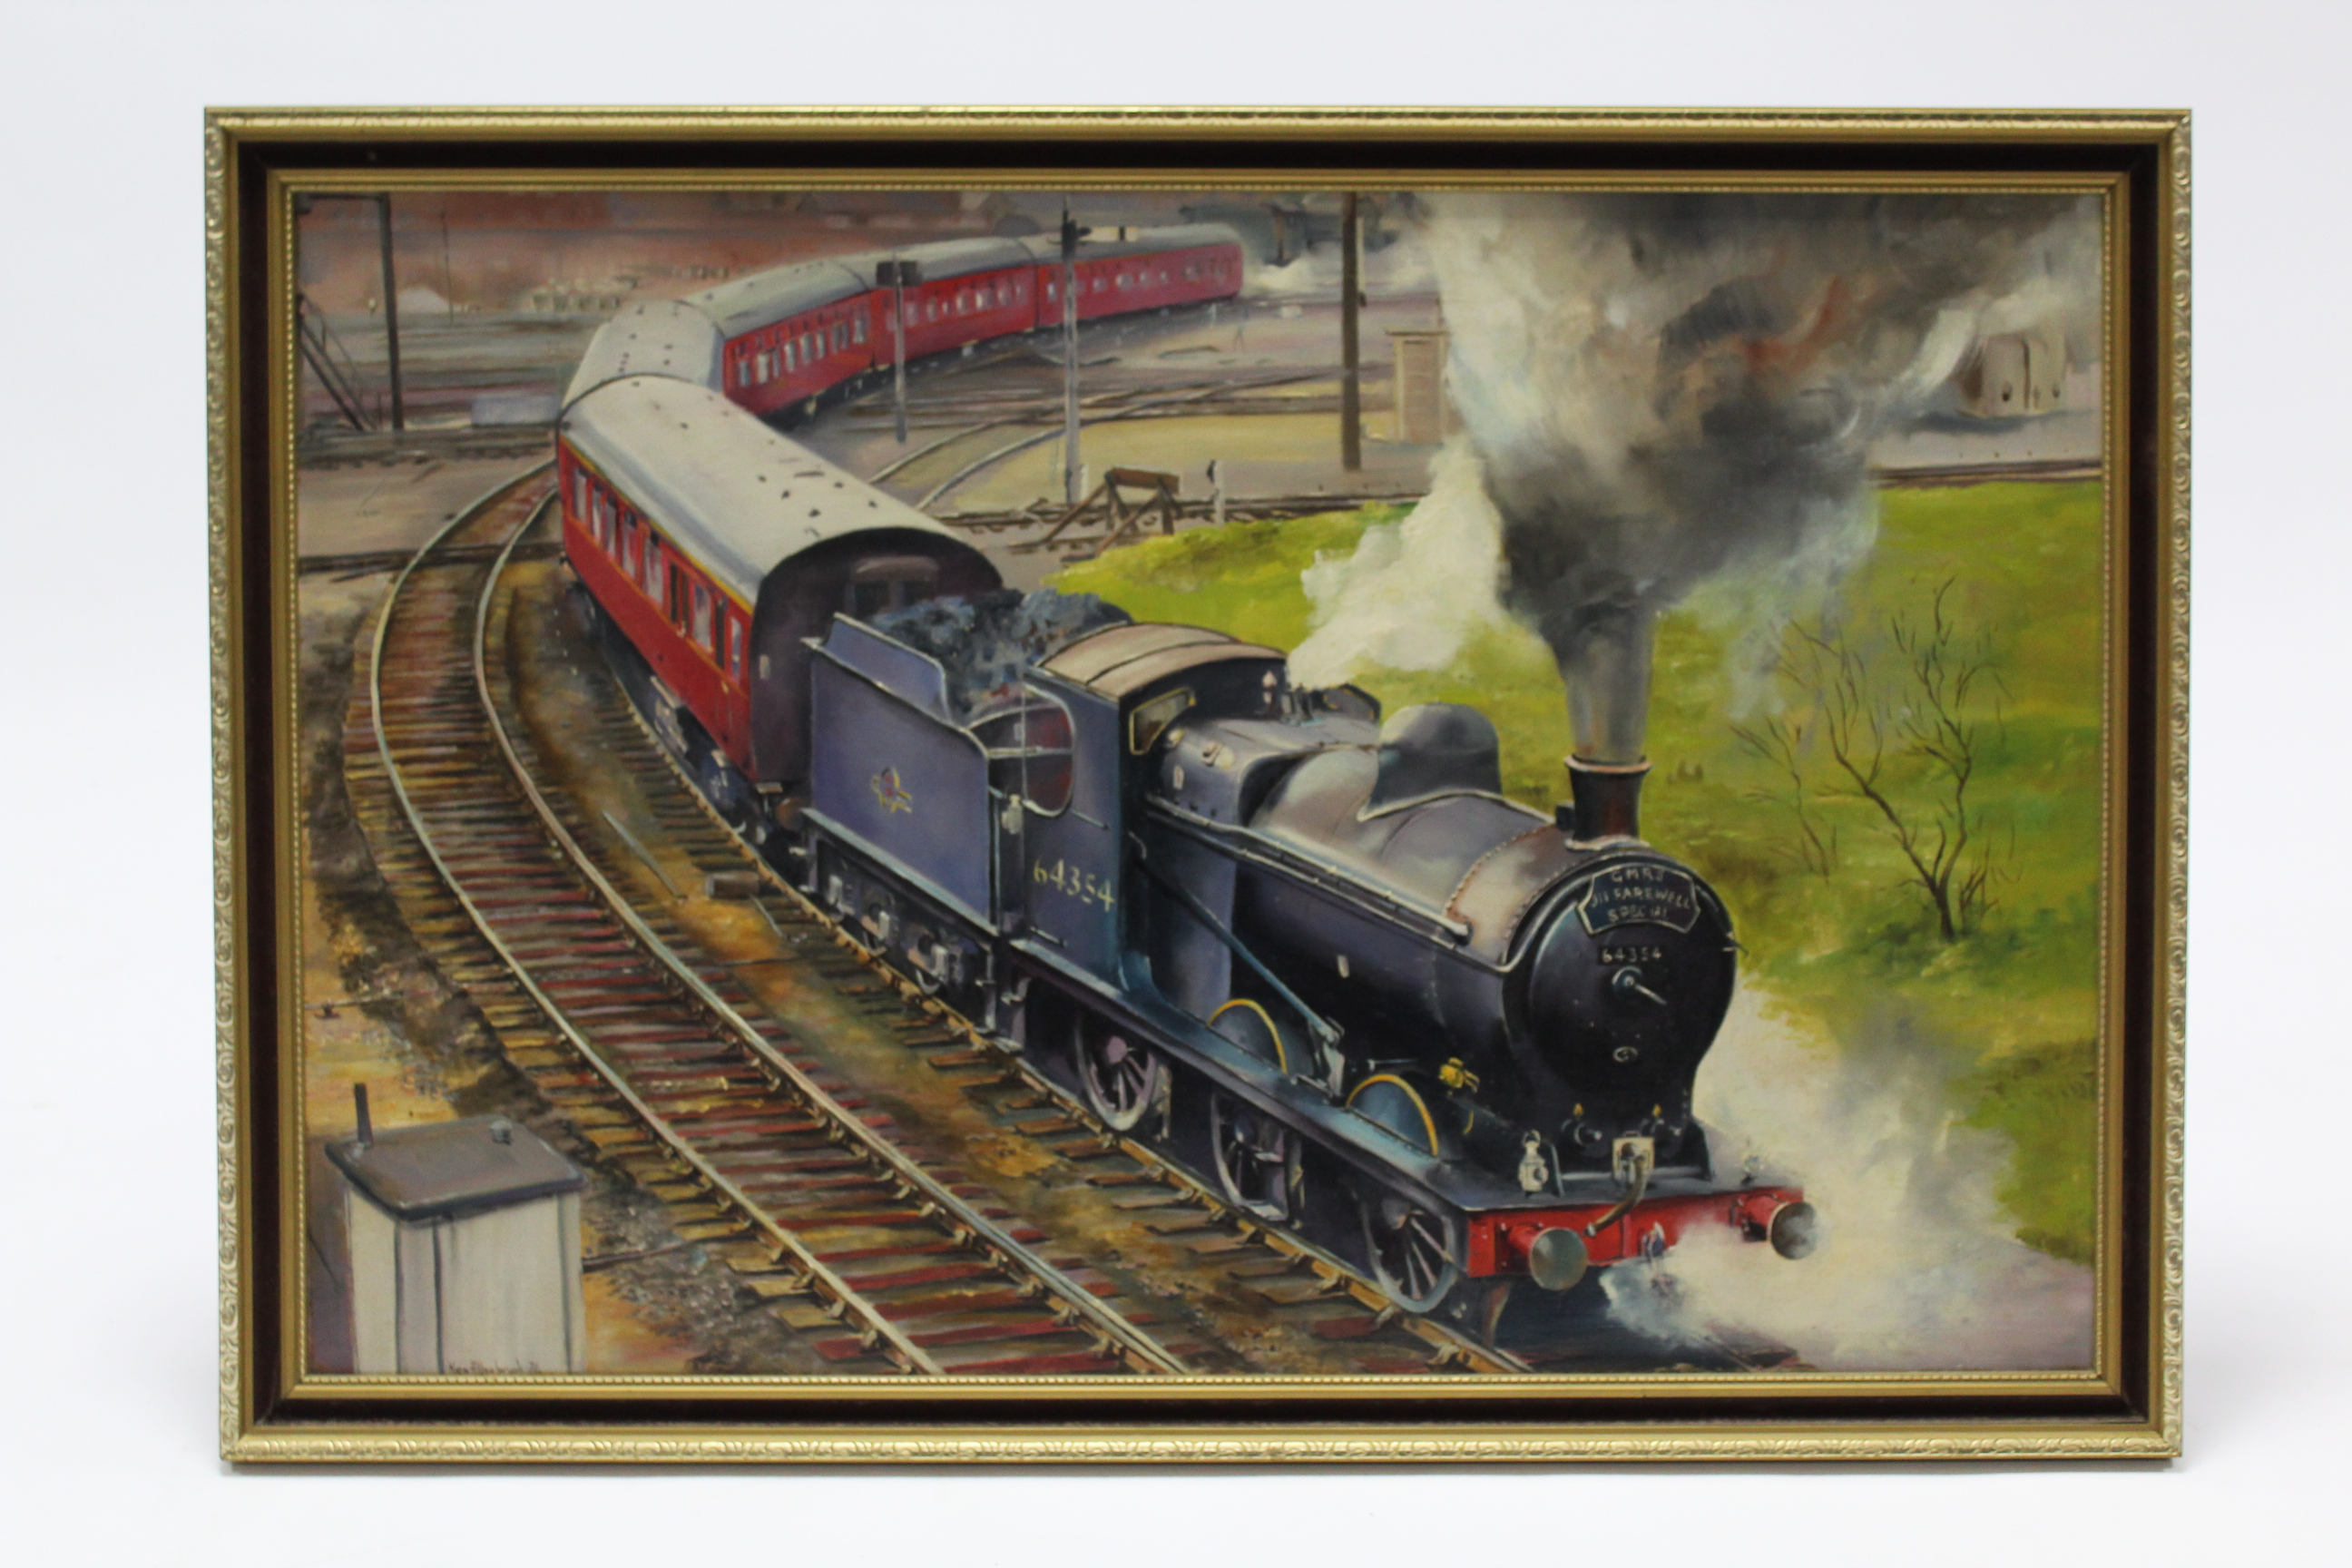 Lot 87 - Another large oil painting on canvas by Ken Allsebrook, of a railway locomotive titled to